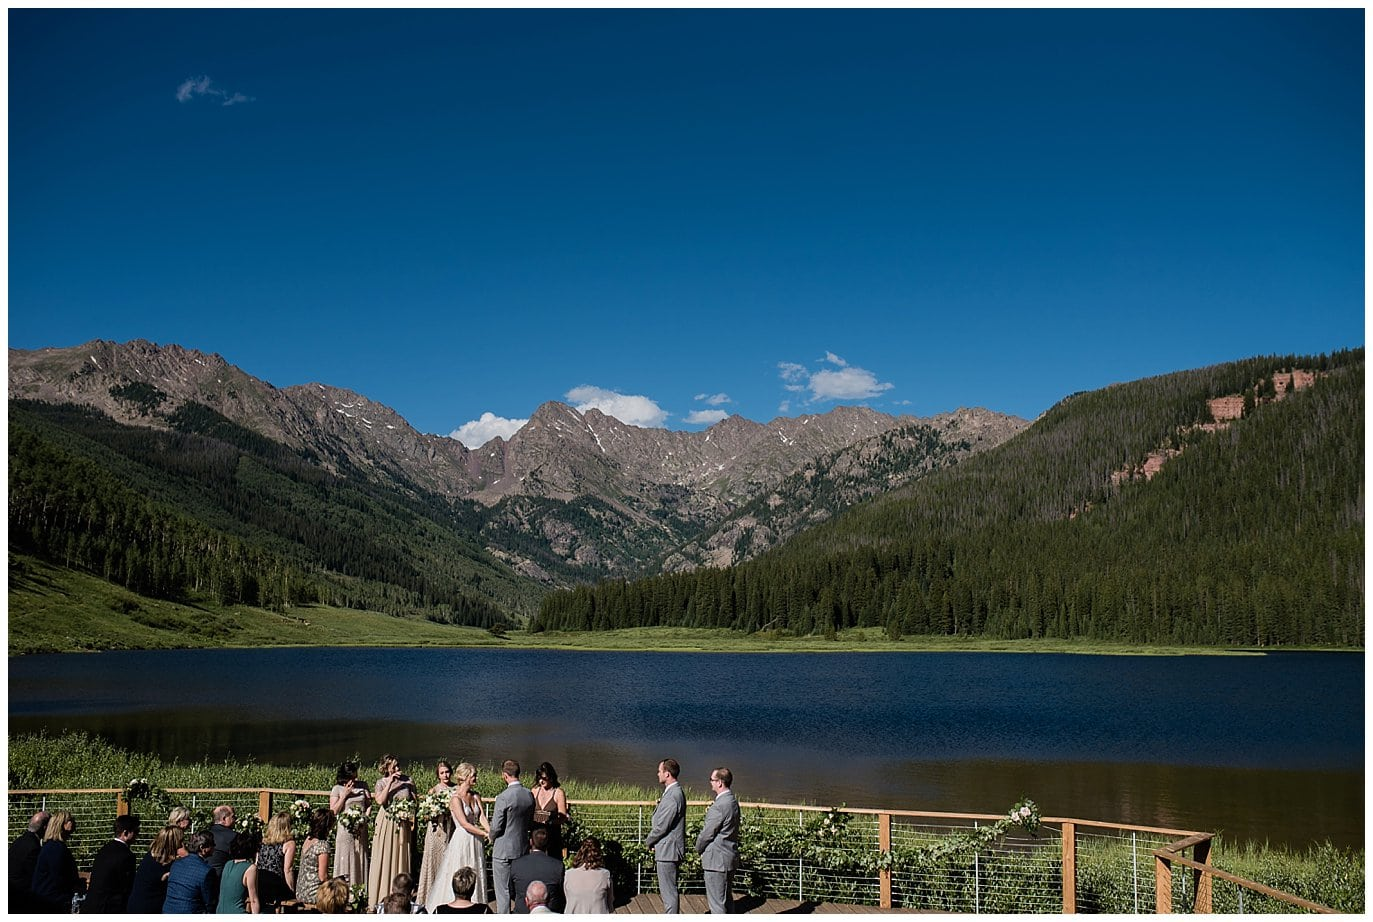 ceremony by lake with blue skies at Elegant Piney River Ranch wedding by Piney River Ranch wedding photographer Jennie Crate, Photographer